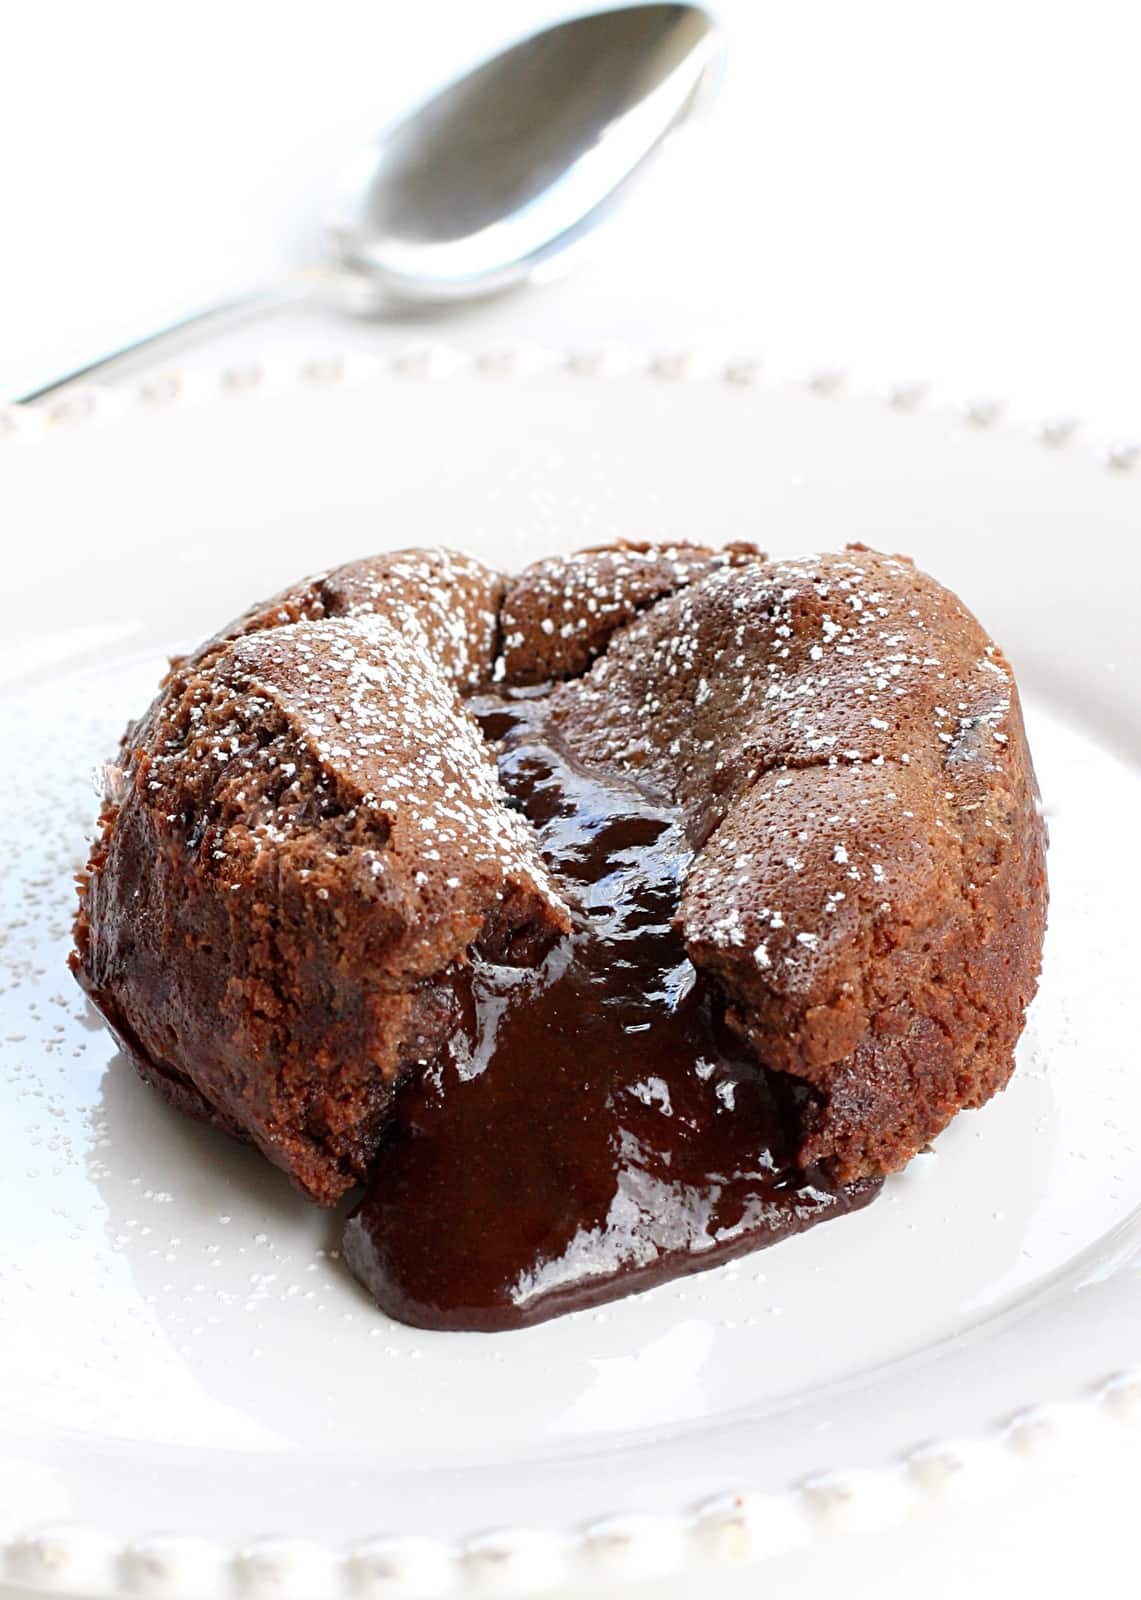 Roy's Chocolate Souffle (Molten Lava Cakes) - a gooey chocolate center is a surprise in the middle! A chocolate lover's dream. Not a copycat recipe. The actual recipe from Roy's. the-girl-who-ate-everything.com